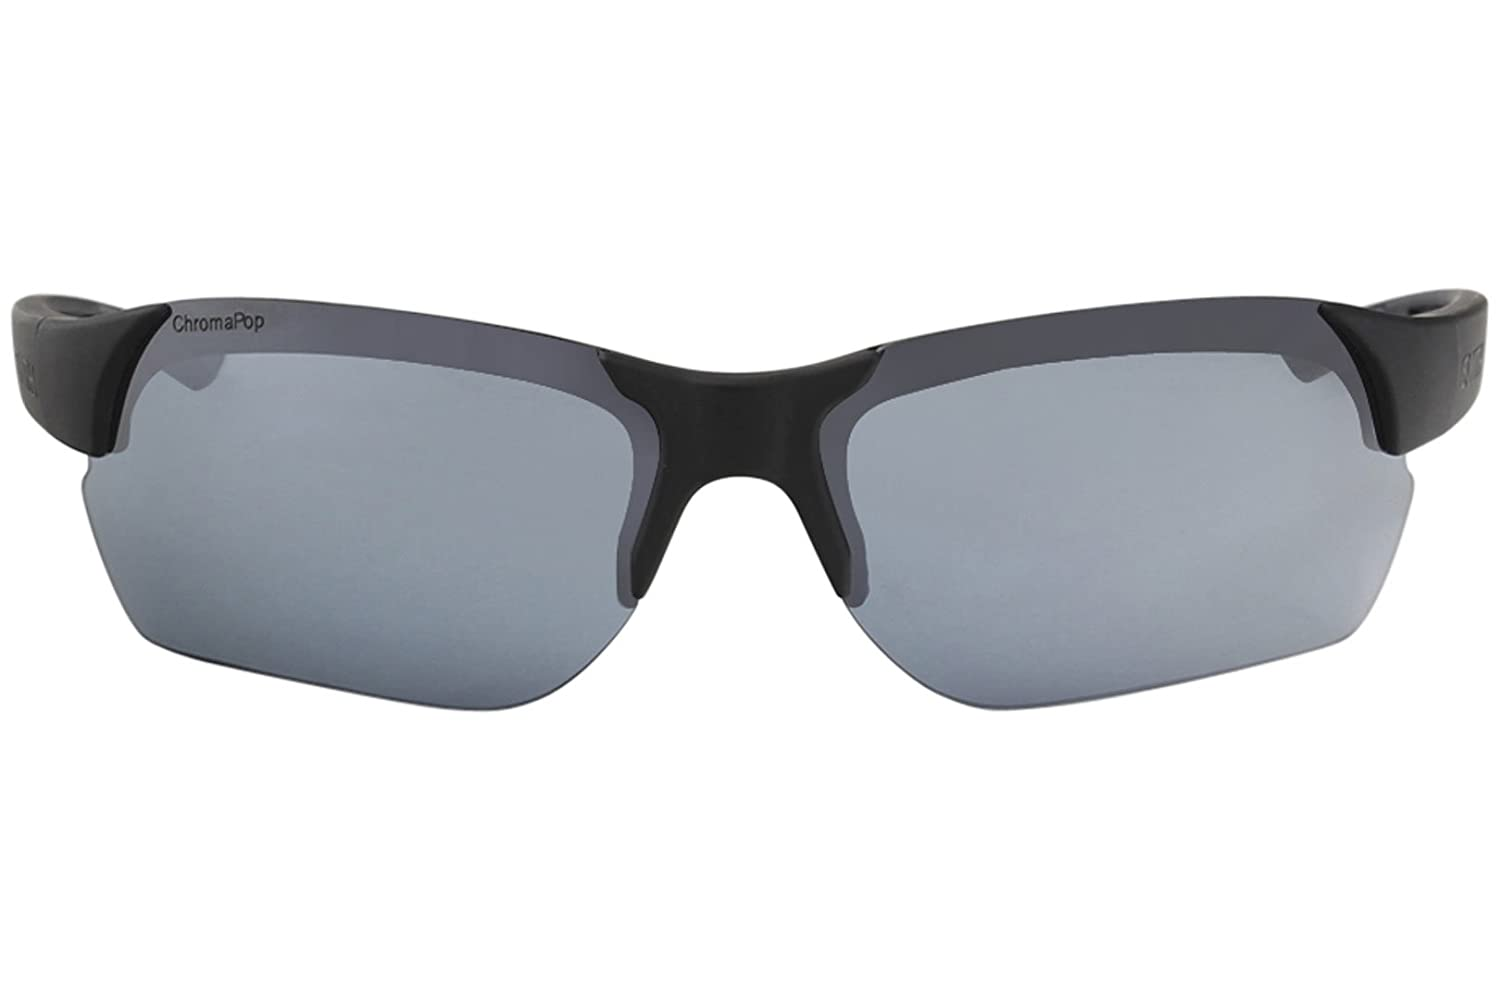 e6e402cac8 Amazon.com  Smith Envoy Max ChromaPop Polarized Sunglasses - Men s Black  Polarized Blue Mirror